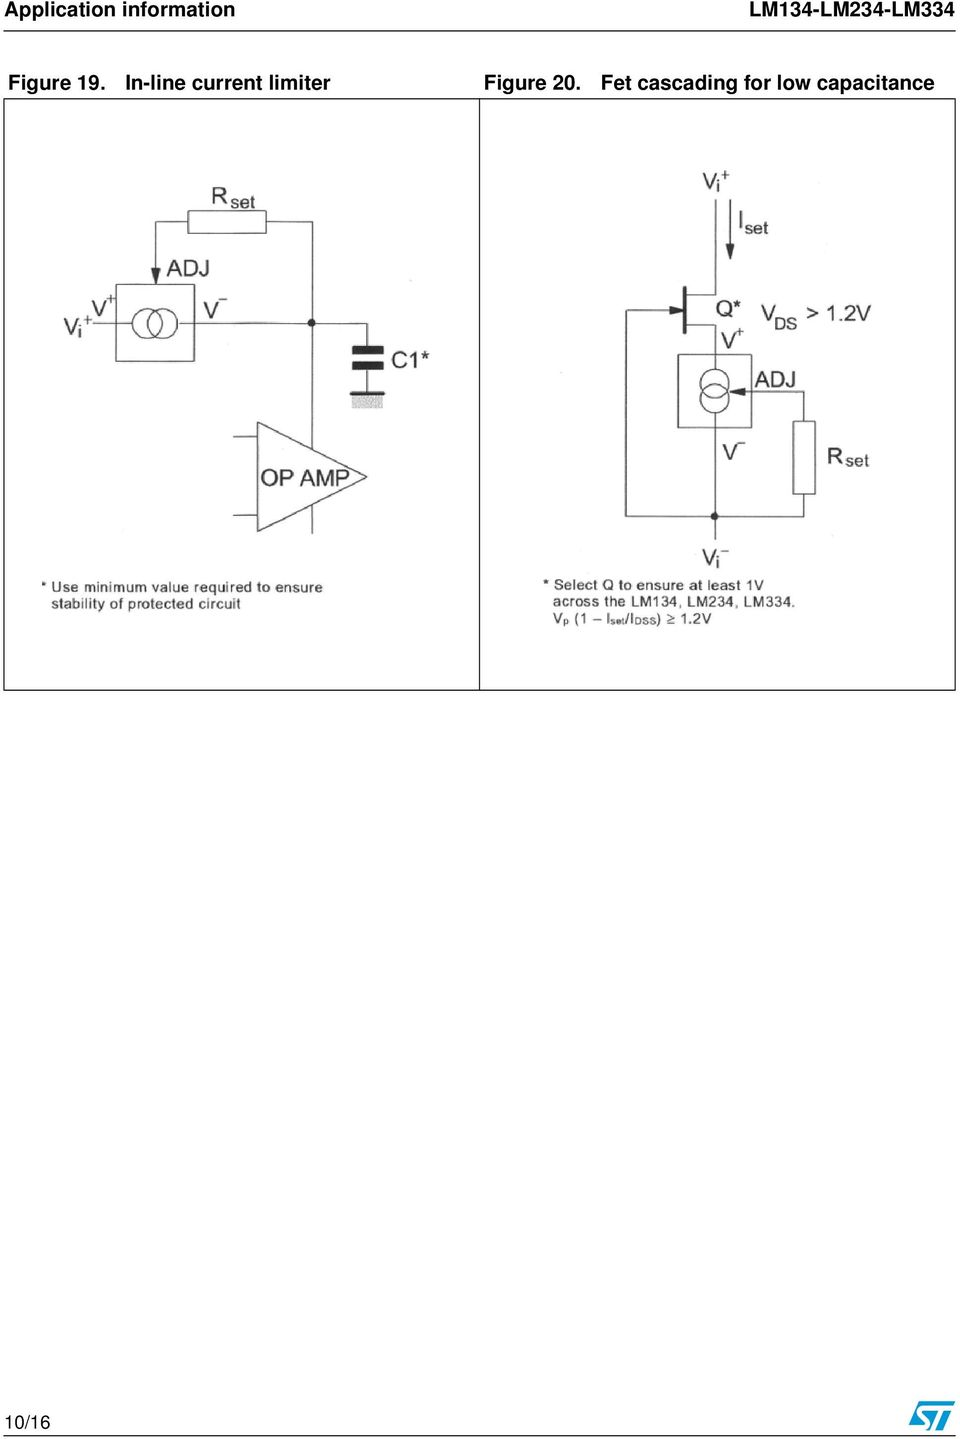 Lm134 Lm234 Lm334 Three Terminal Adjustable Current Sources Bta41 600b Datasheet Application Note Electronic Circuit Projects In Line Limiter Figure